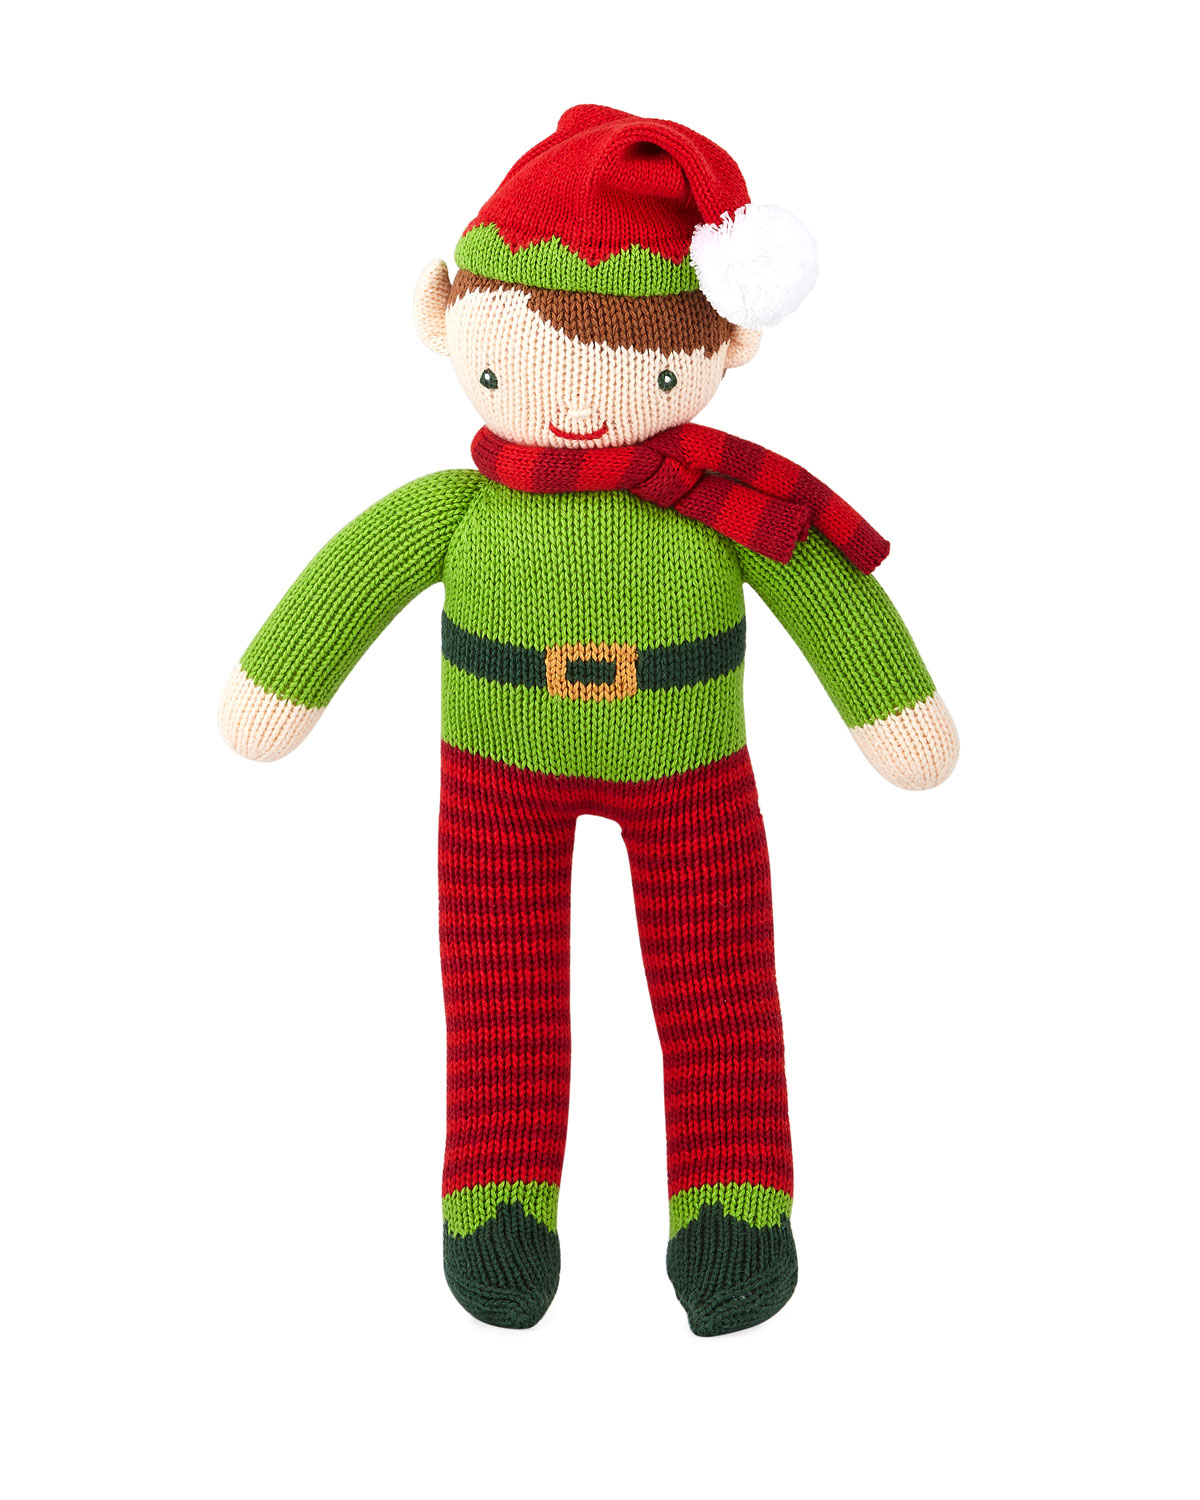 Knit Boy Elf Doll 14